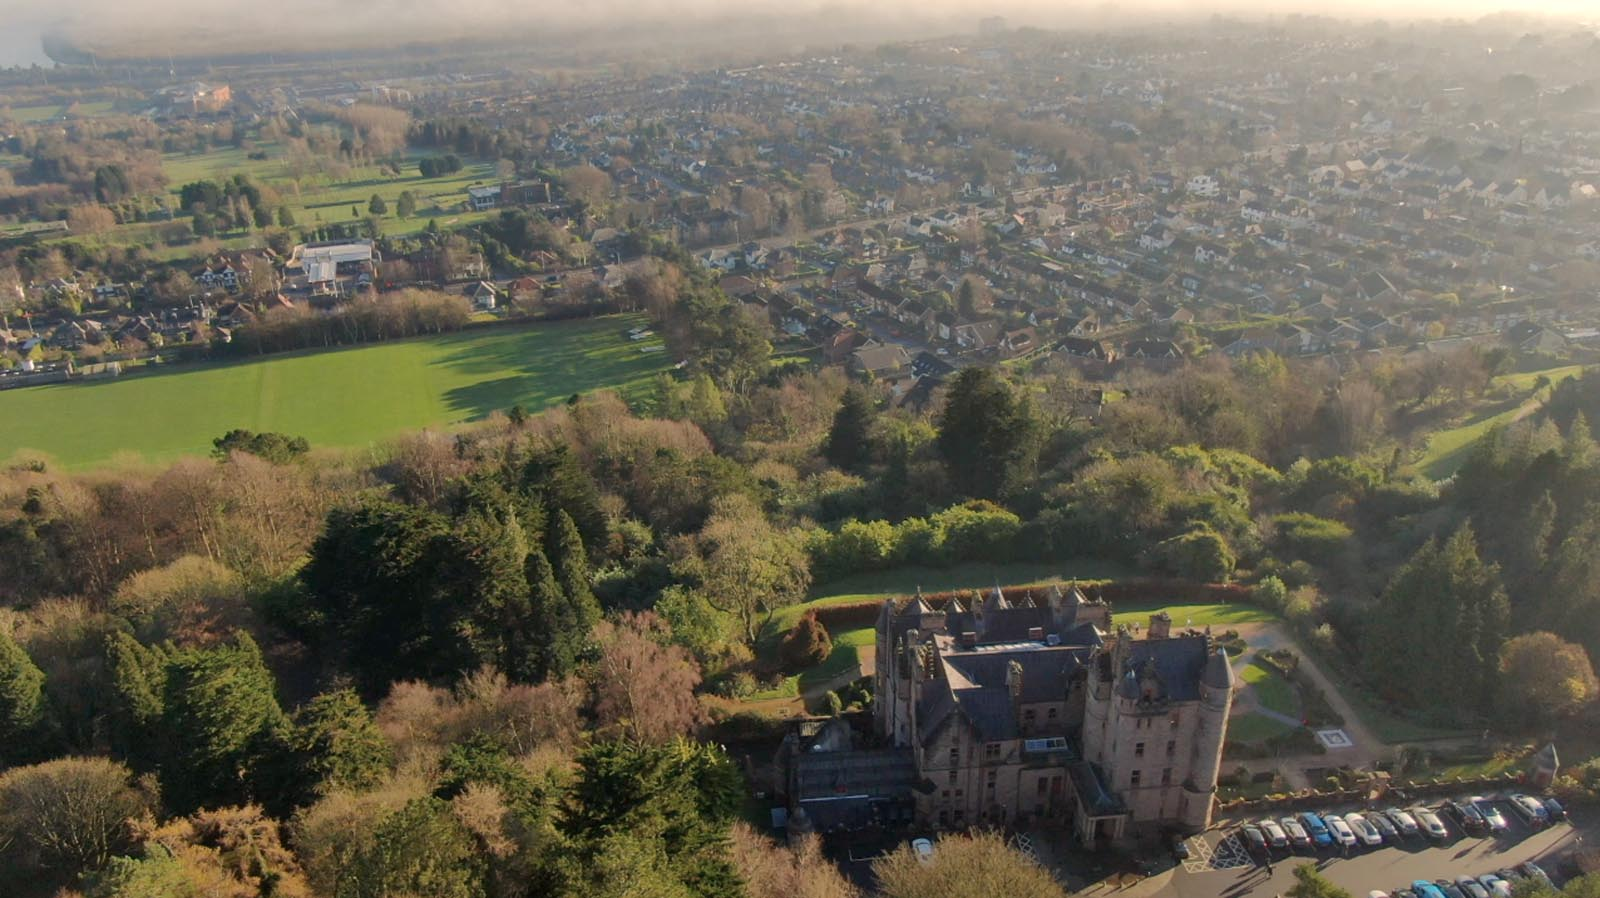 Aerial drone photography and video production services Dublin and Ireland portfolio - screenshot 4 of Belfast Castle 2 video